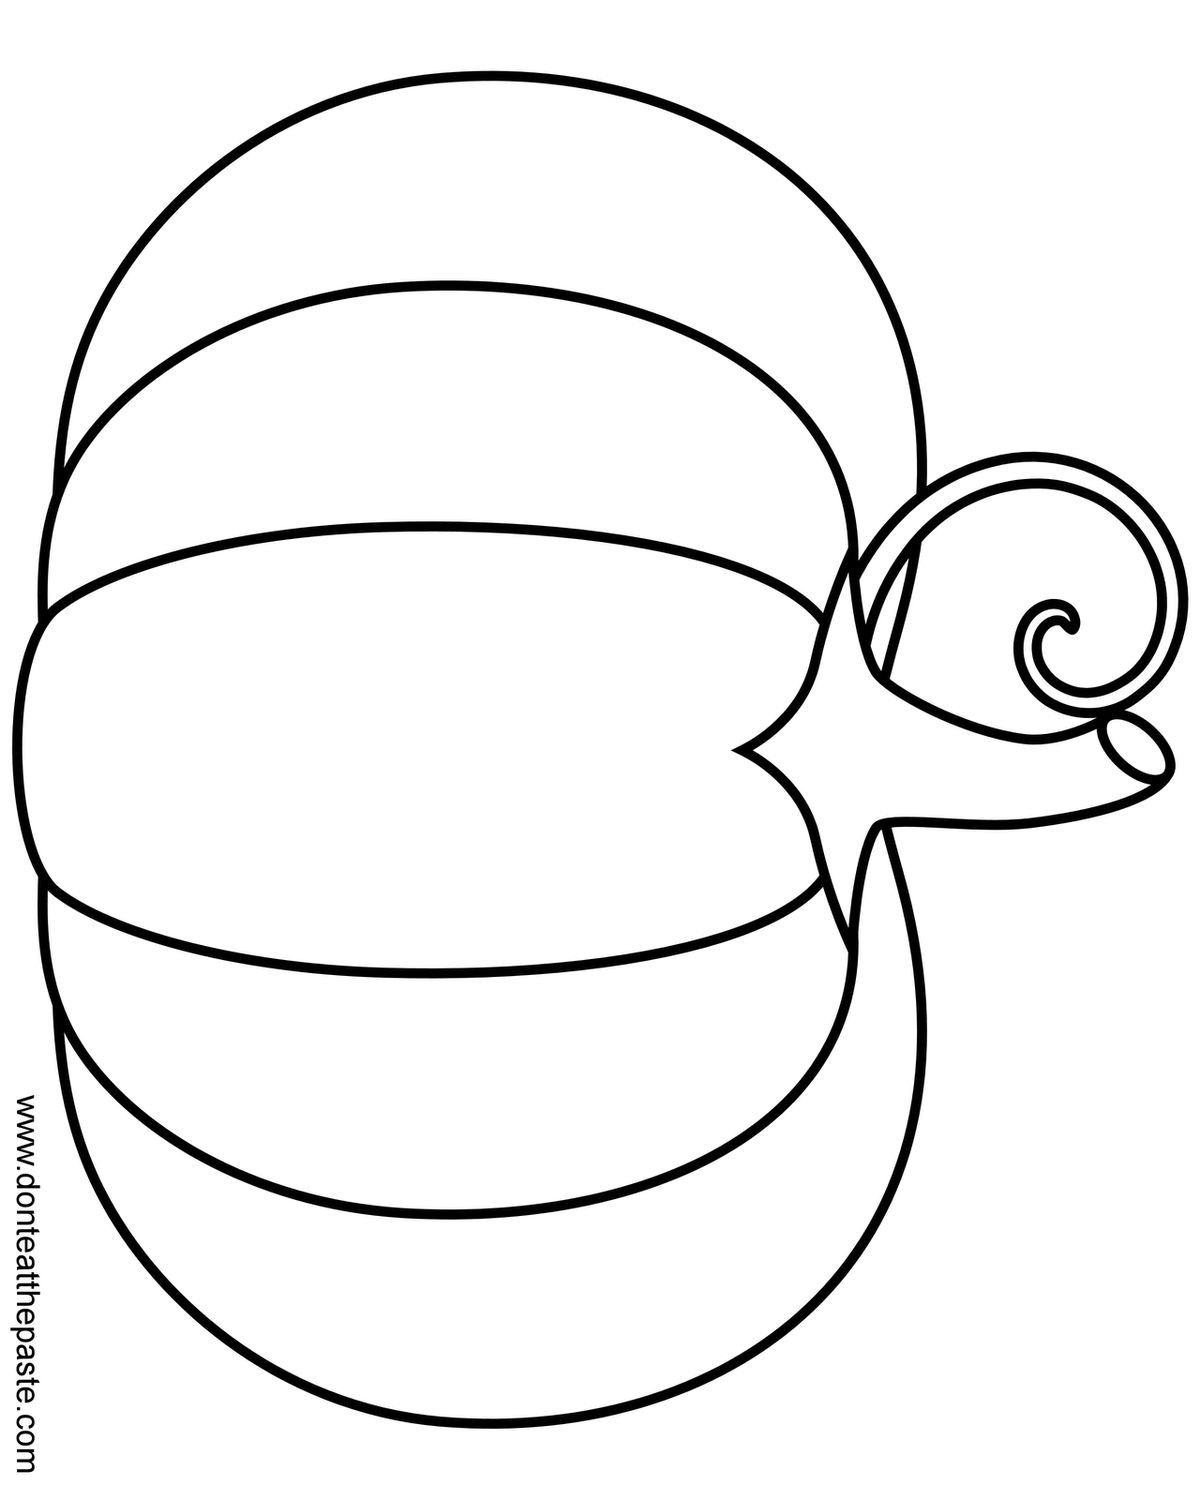 Pin By Frances Nance On Templates Pumpkin Coloring Pages